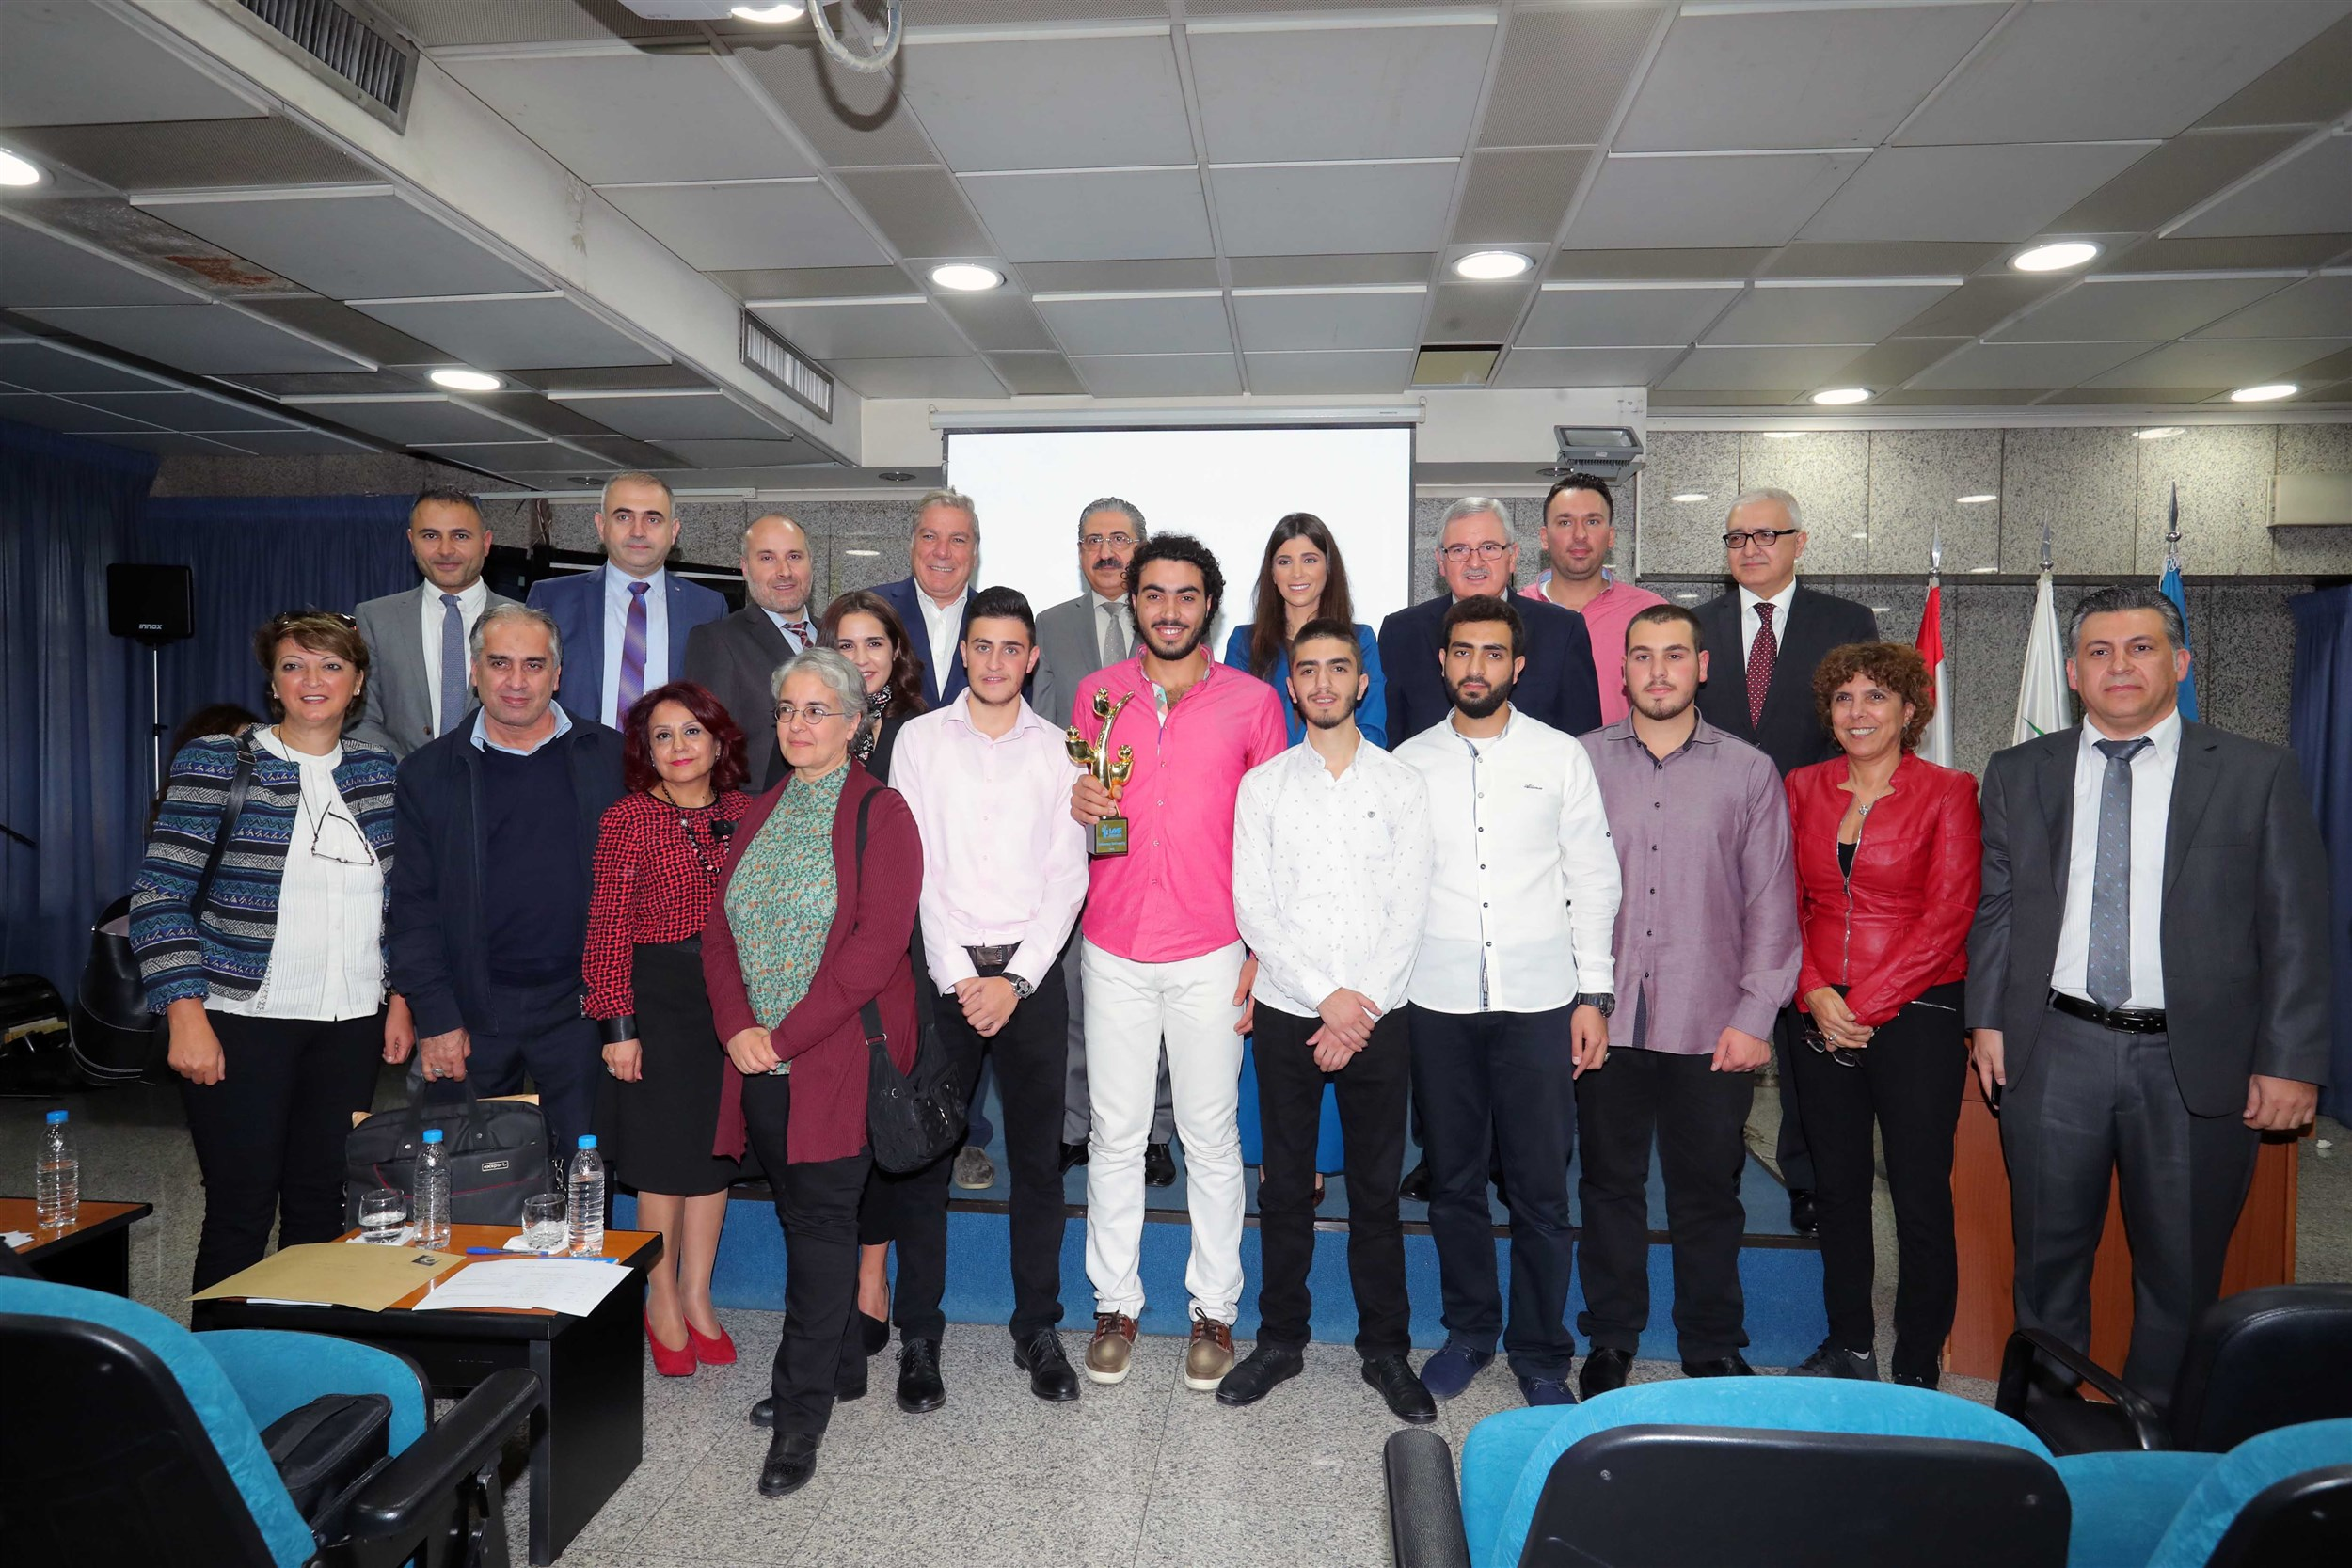 the students of the lebanese university who participated in iaaf awards with the president of the lebanese university professor fouad ayoub and the jury.